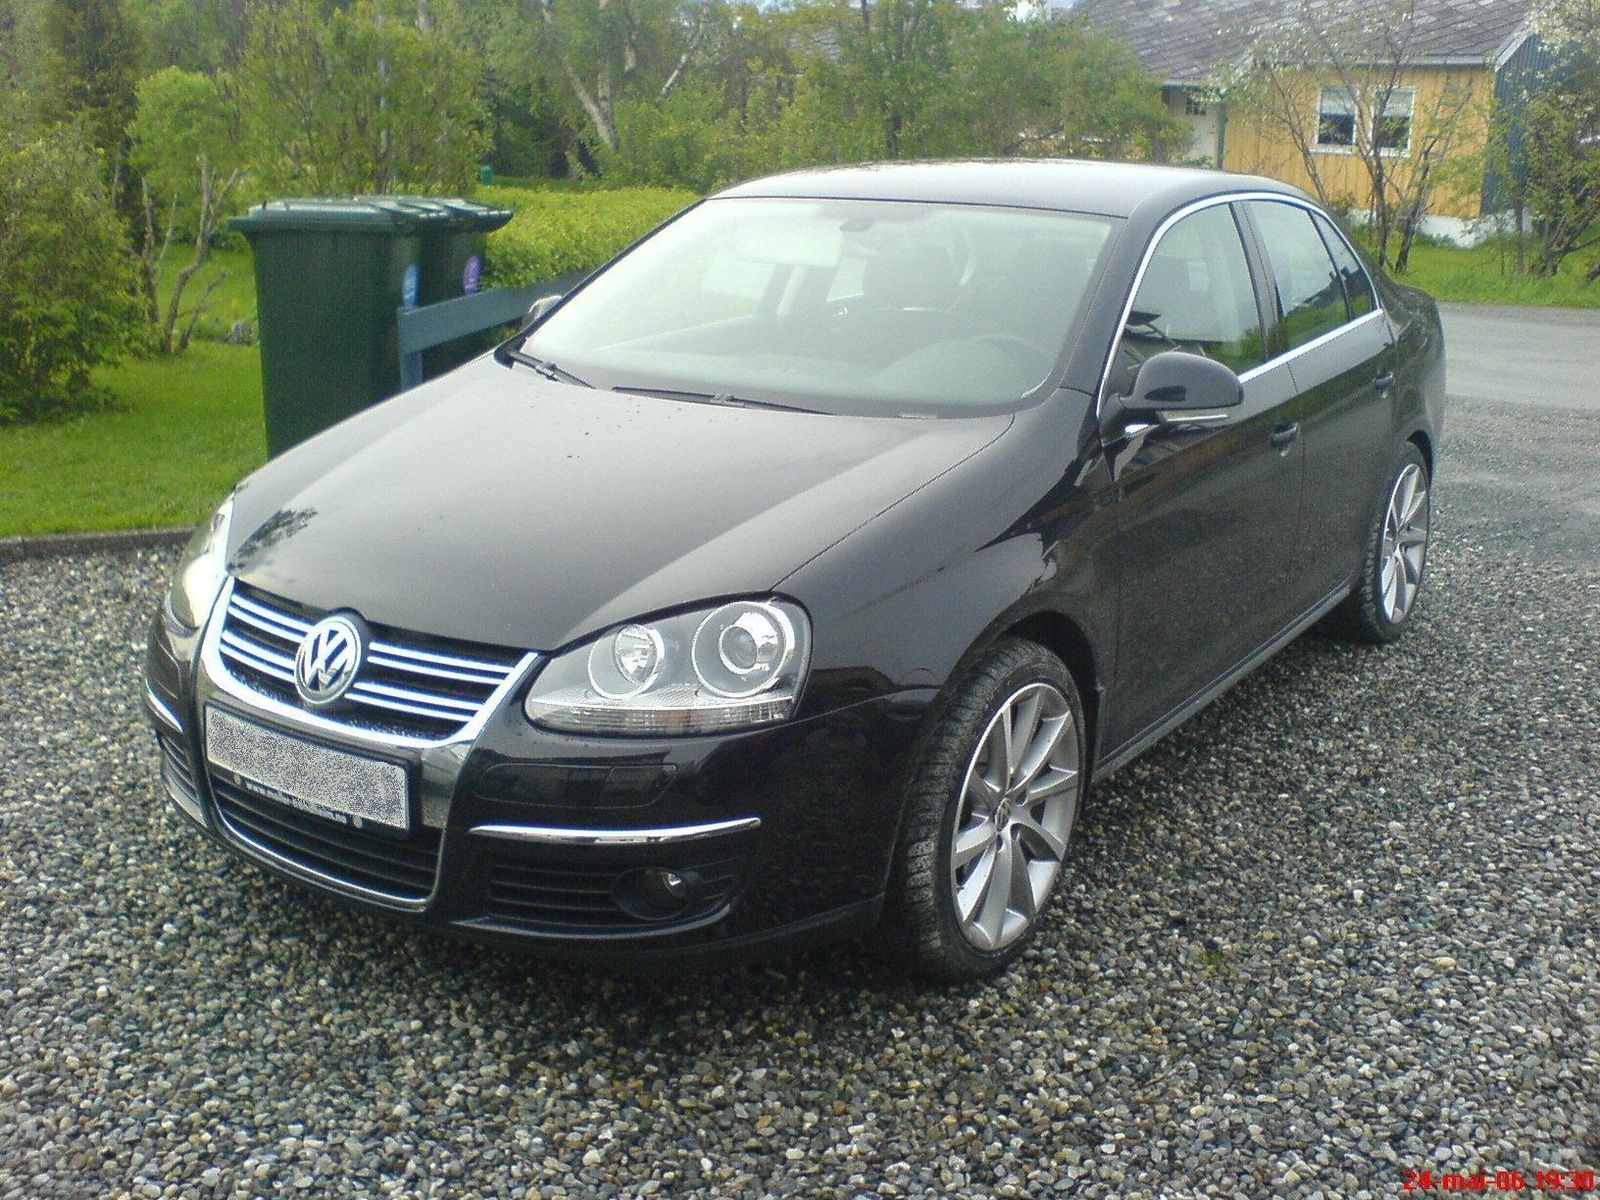 2006 volkswagen jetta owner s manual volkswagen quite often shortened to vw is actually an car maker from germany get your vw owner manual here